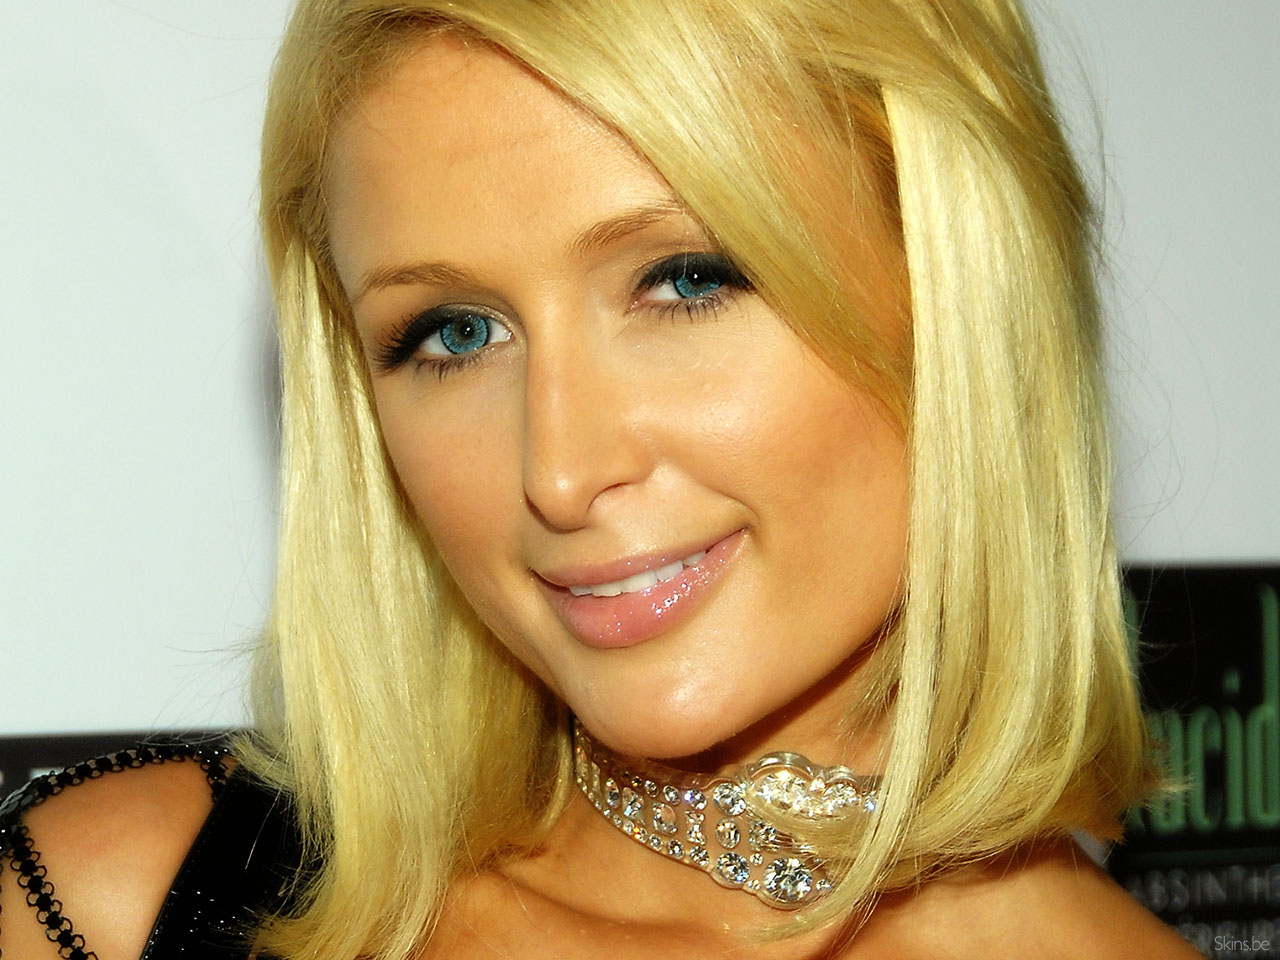 Paris Hilton wallpaper (#32407)